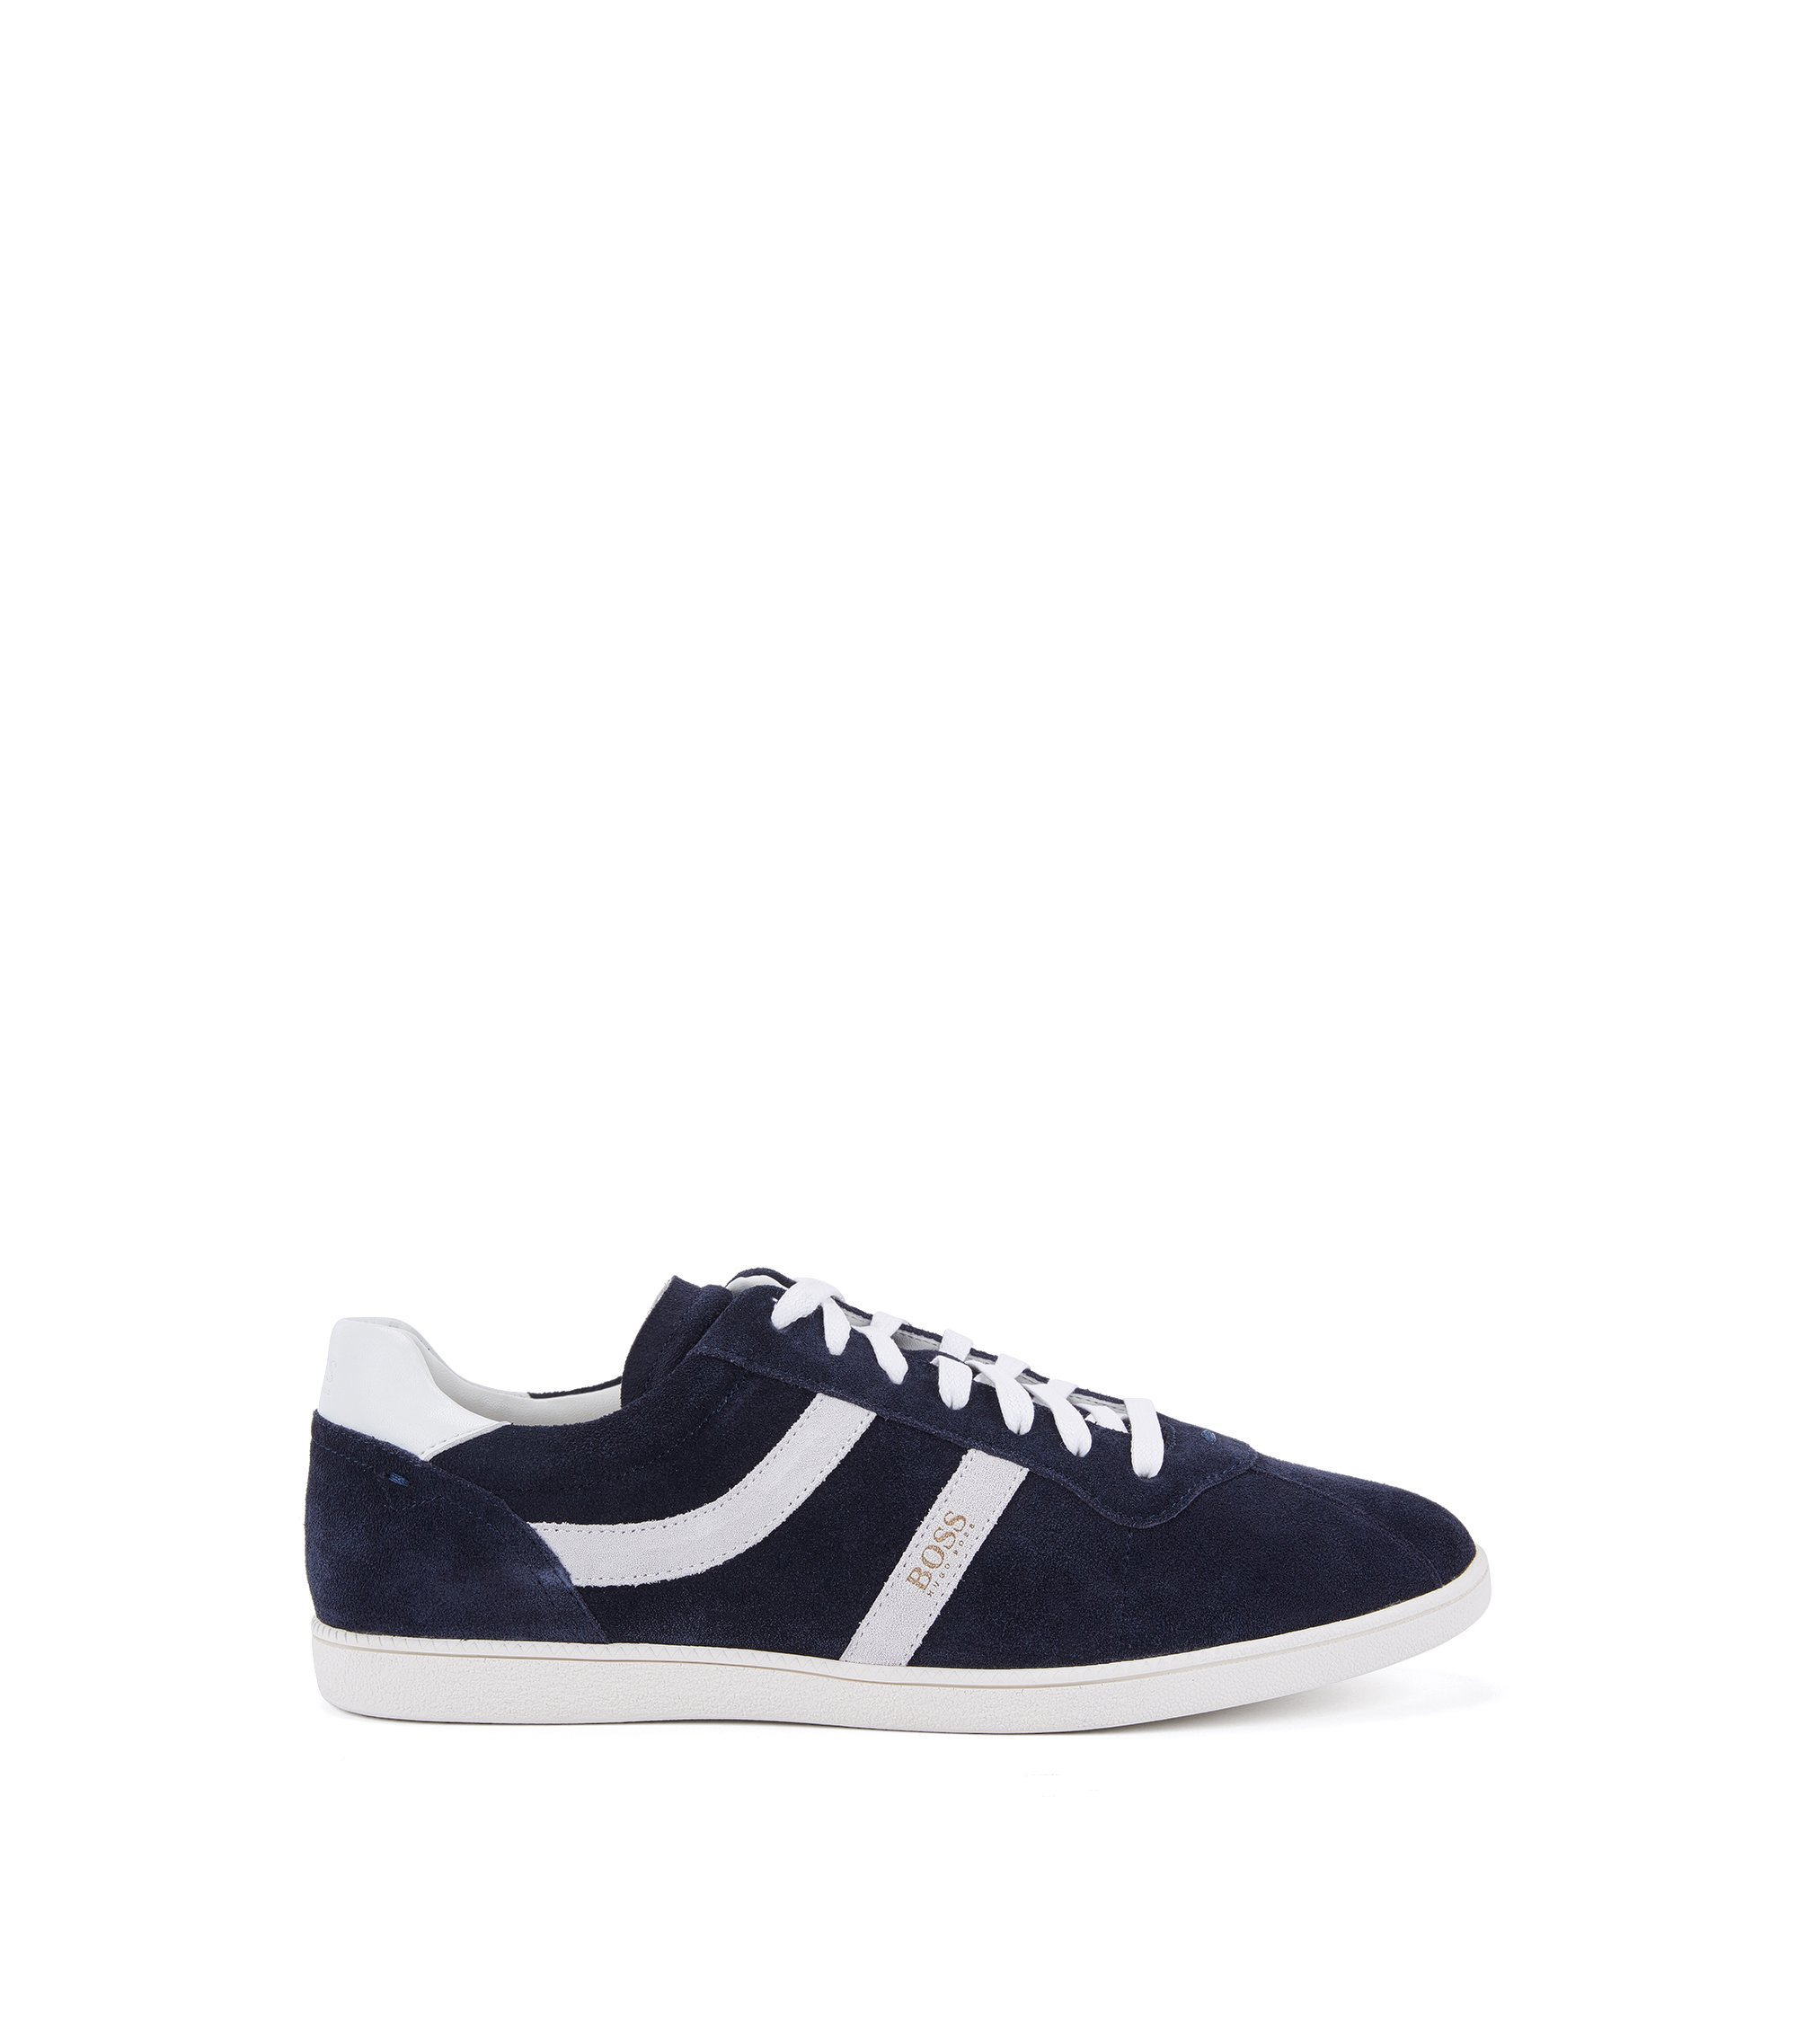 Suede Sneaker | Rumba Tenn Sd, Dark Blue